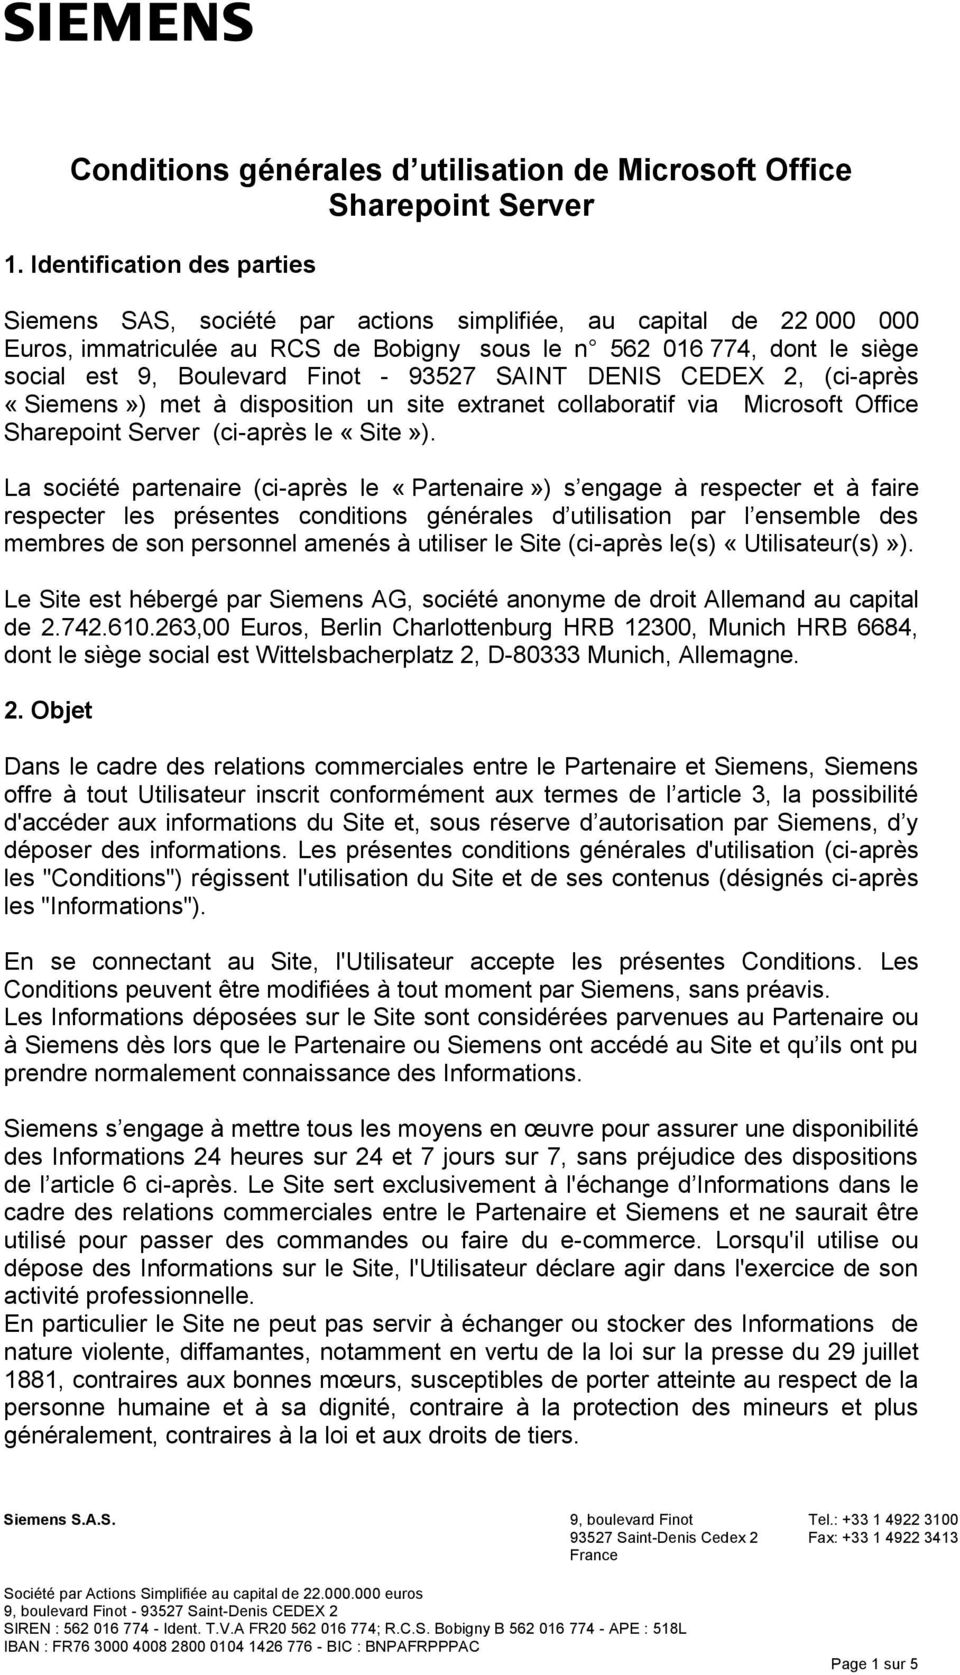 Finot - 93527 SAINT DENIS CEDEX 2, (ci-après «Siemens») met disposition un site extranet collaboratif via Microsoft Office Sharepoint Server (ci-après le «Site»).